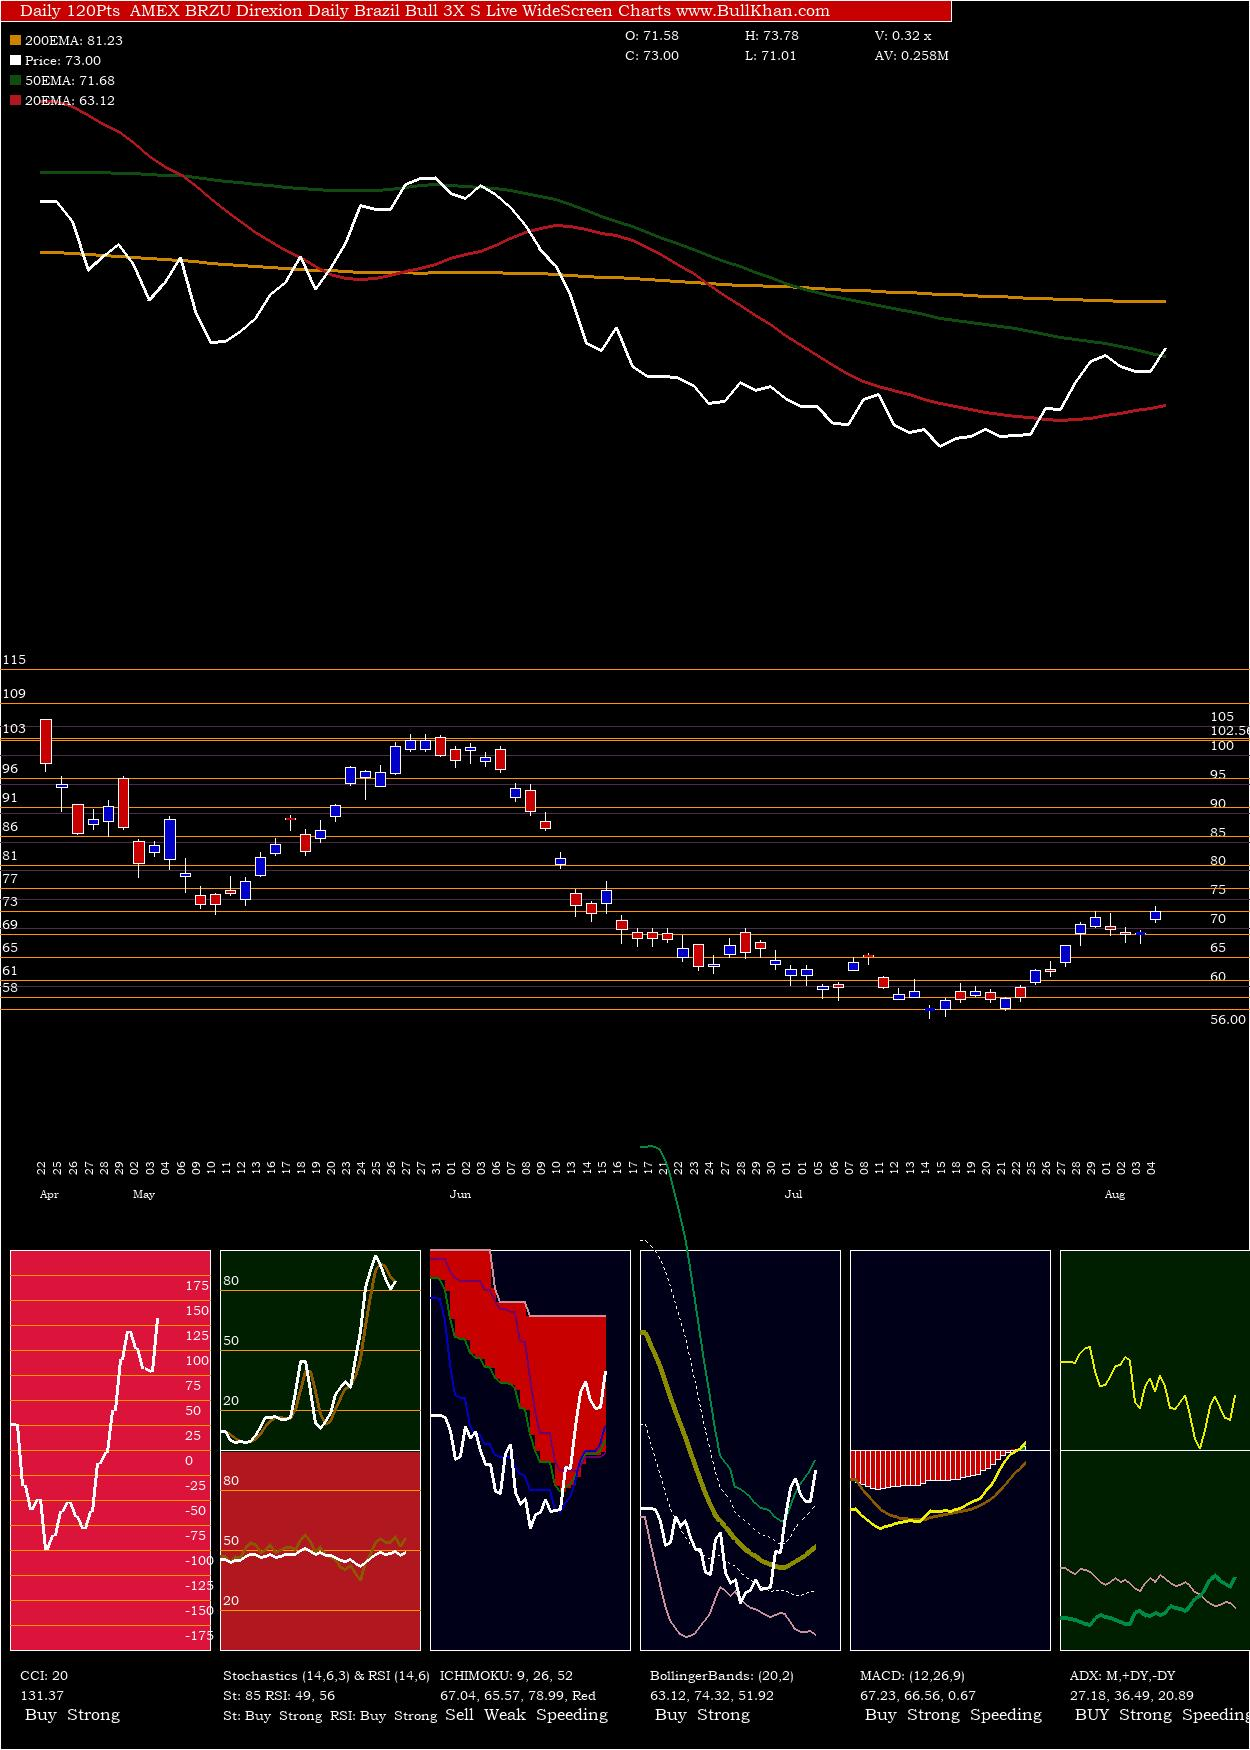 Direxion Daily Brazil Bull 3X S charts and indicators